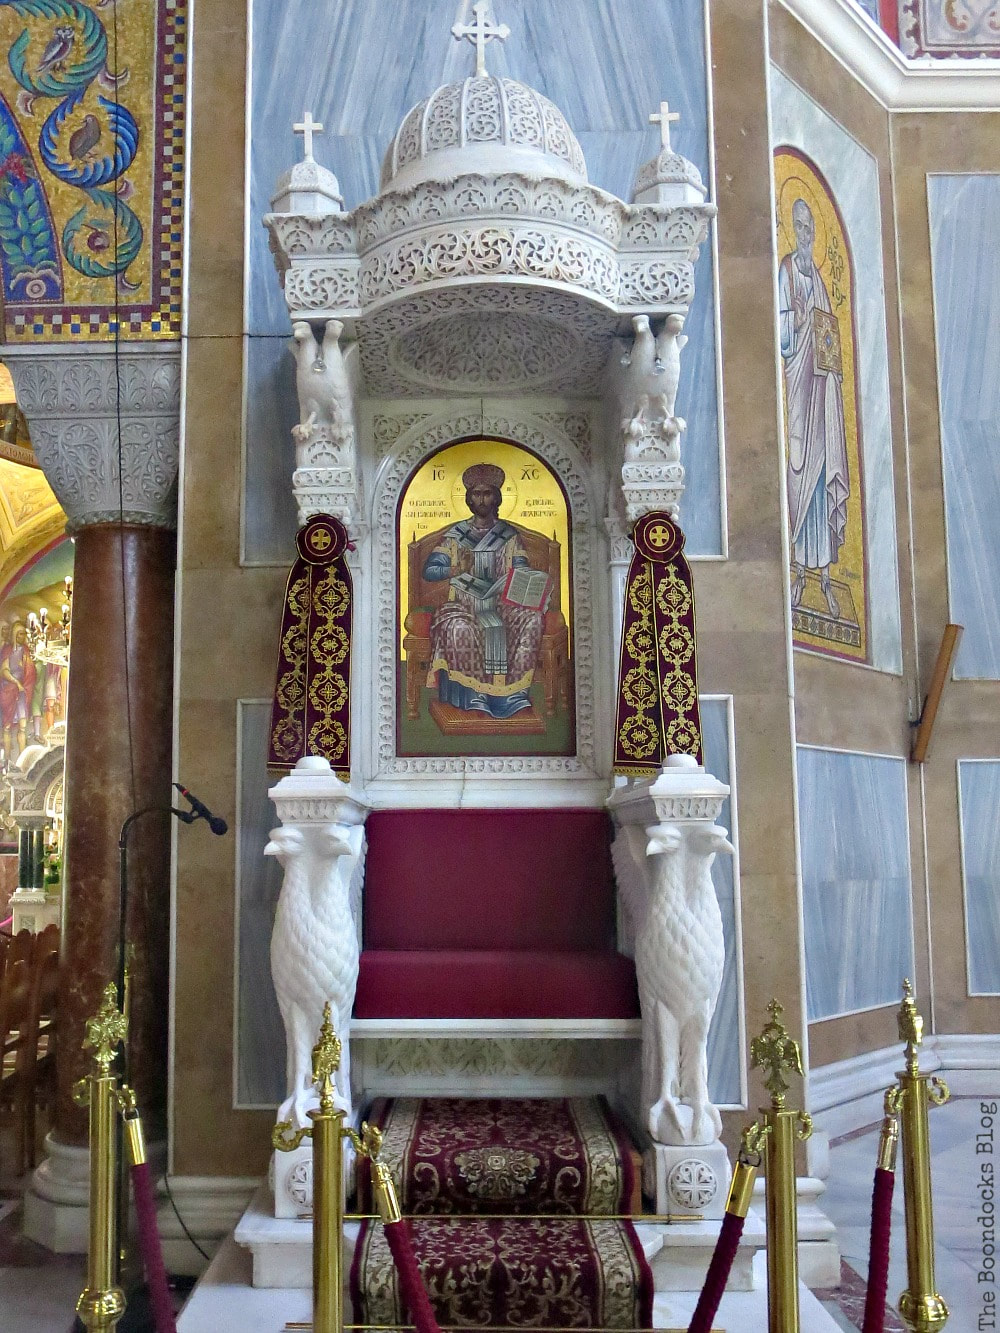 The Bishop's Throne, Admiring the Interior of Saint Andrew's Cathedral www.theboondocksblog.com